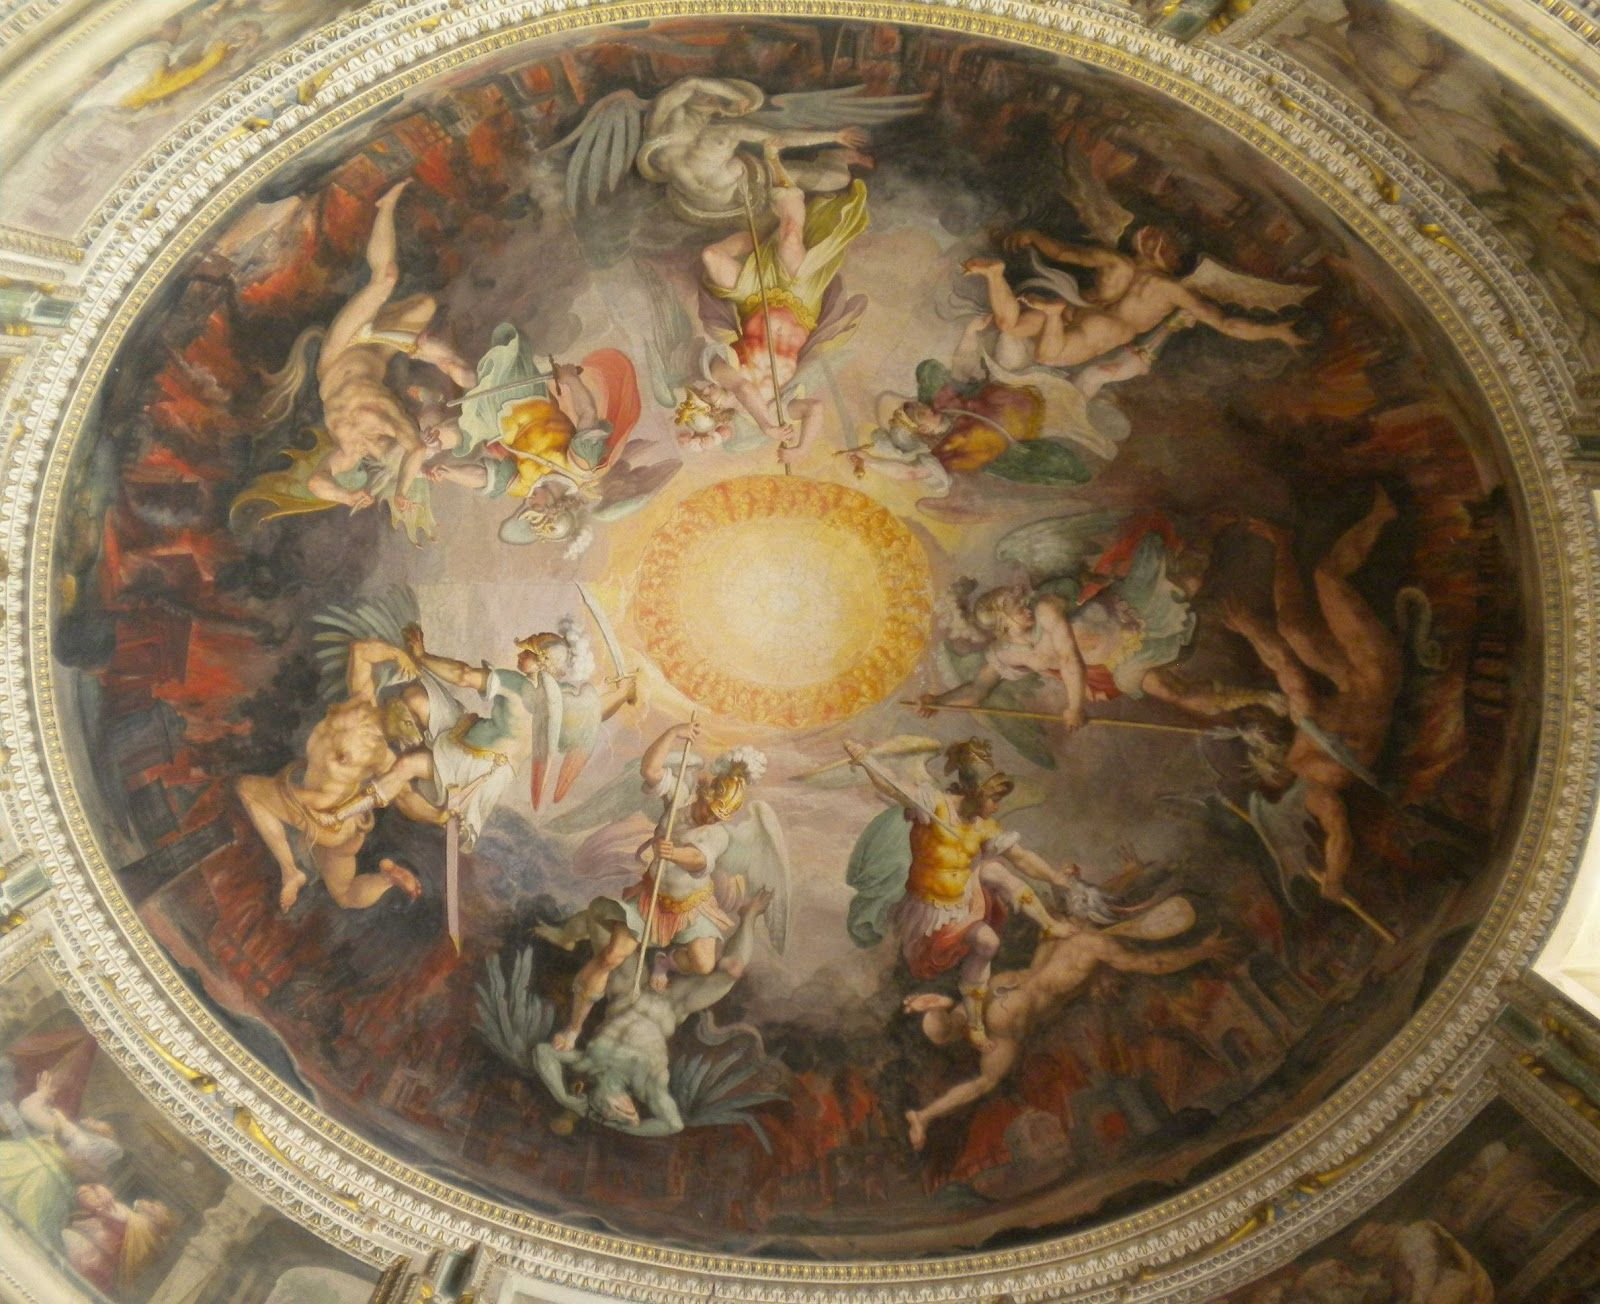 P O P Fall Ceiling Wallpaper Angels And Demons Ceiling Painting Of Angels Battling